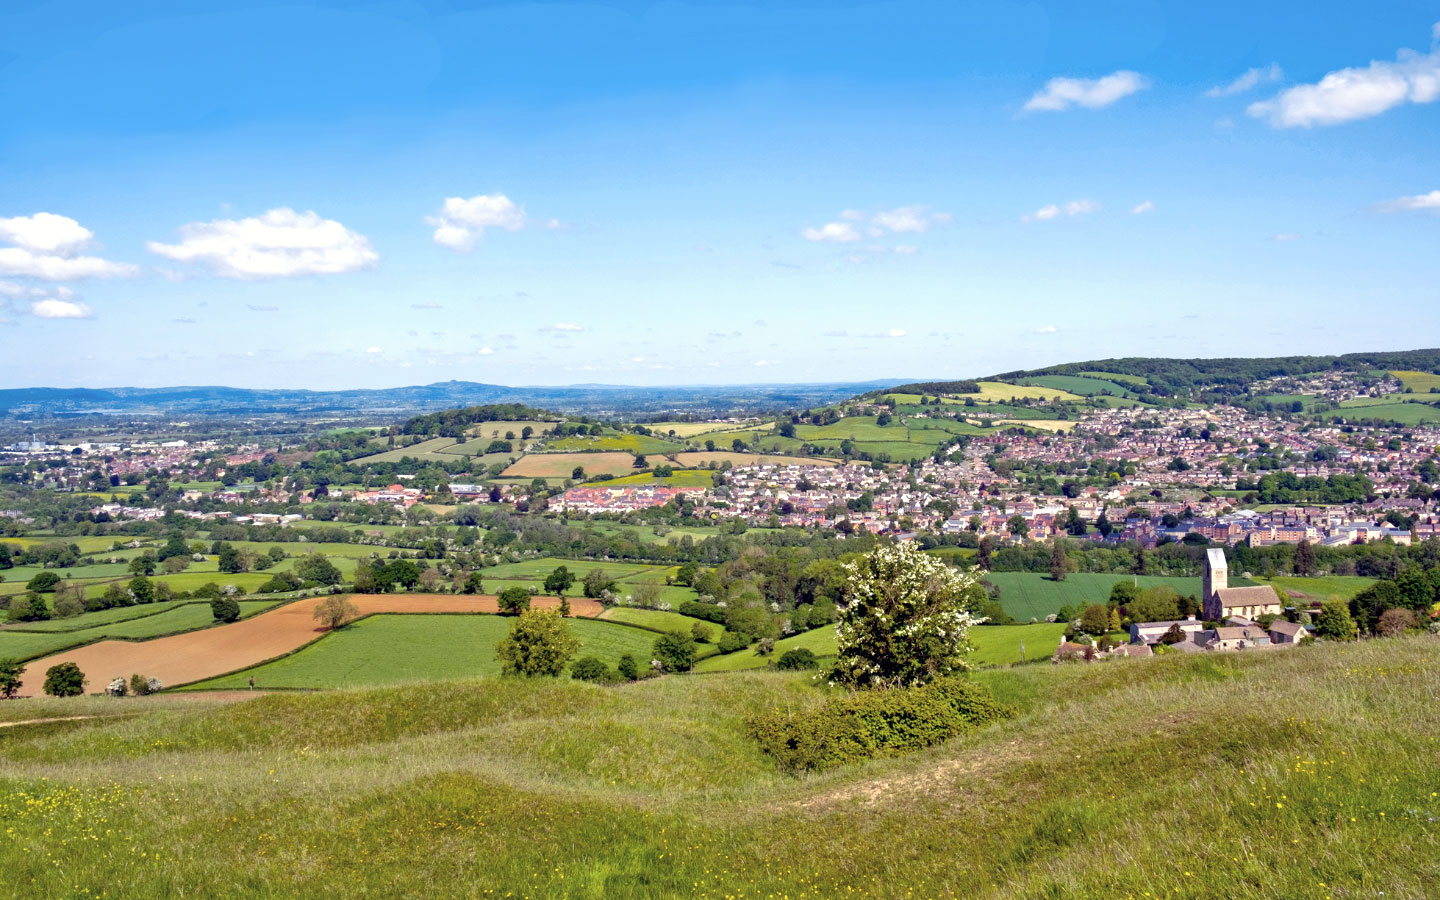 Views from Selsley Common on the Cotswold Way